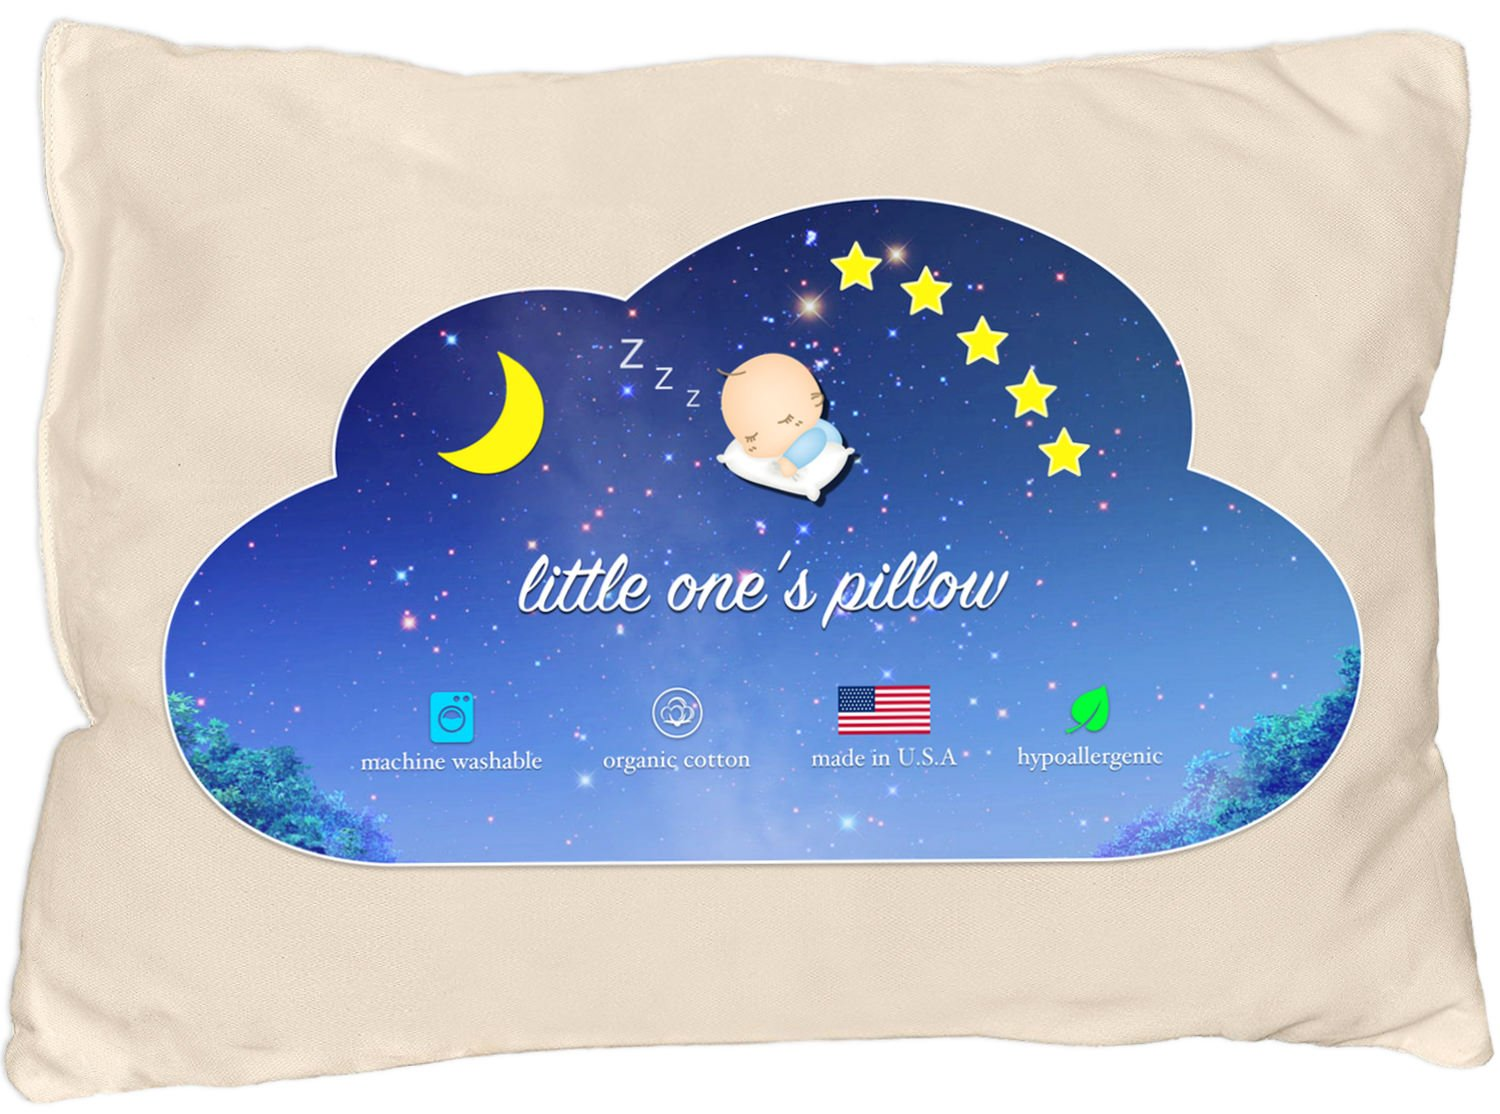 Little One's Pillow - Toddler Pillow, Delicate Organic Cotton Shell, Handcrafted in USA - Soft Yet Supportive, Washable 13 X 18 by Little One's Pillow